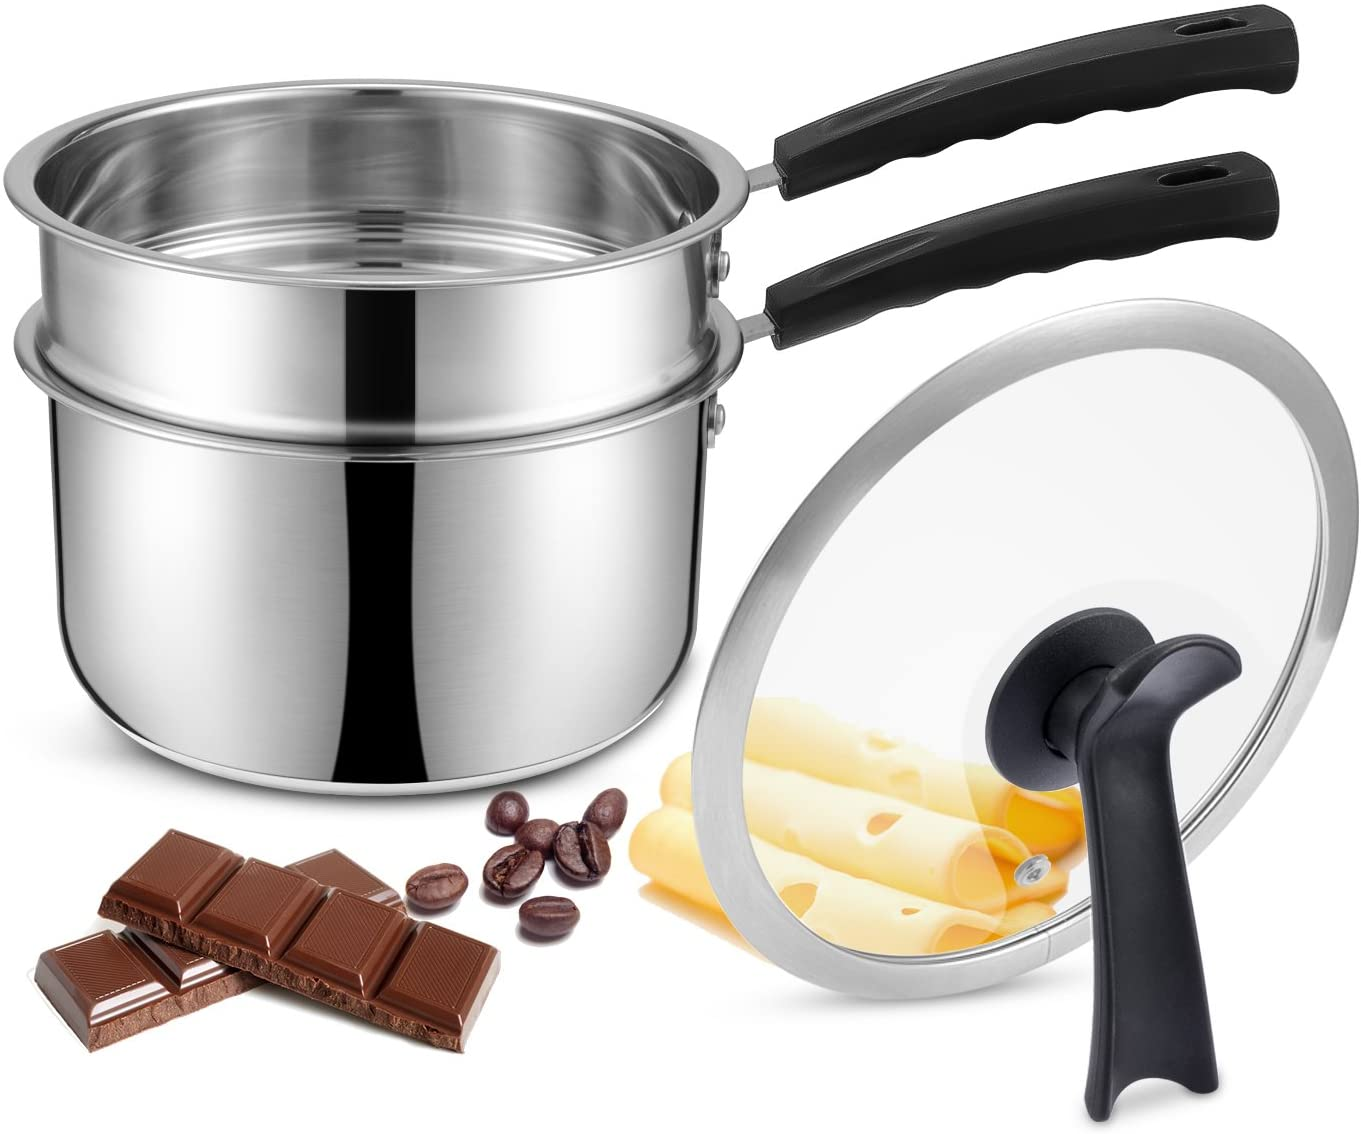 Capacity Is About 13 Ounces AIKEFOO 304 Stainless Steel Two-Pot Boiler For Melting Chocolate Candy Caramel And Making Candles And Sauces.Easy To Clean Butter With Pink Silicone Spatula Cheese